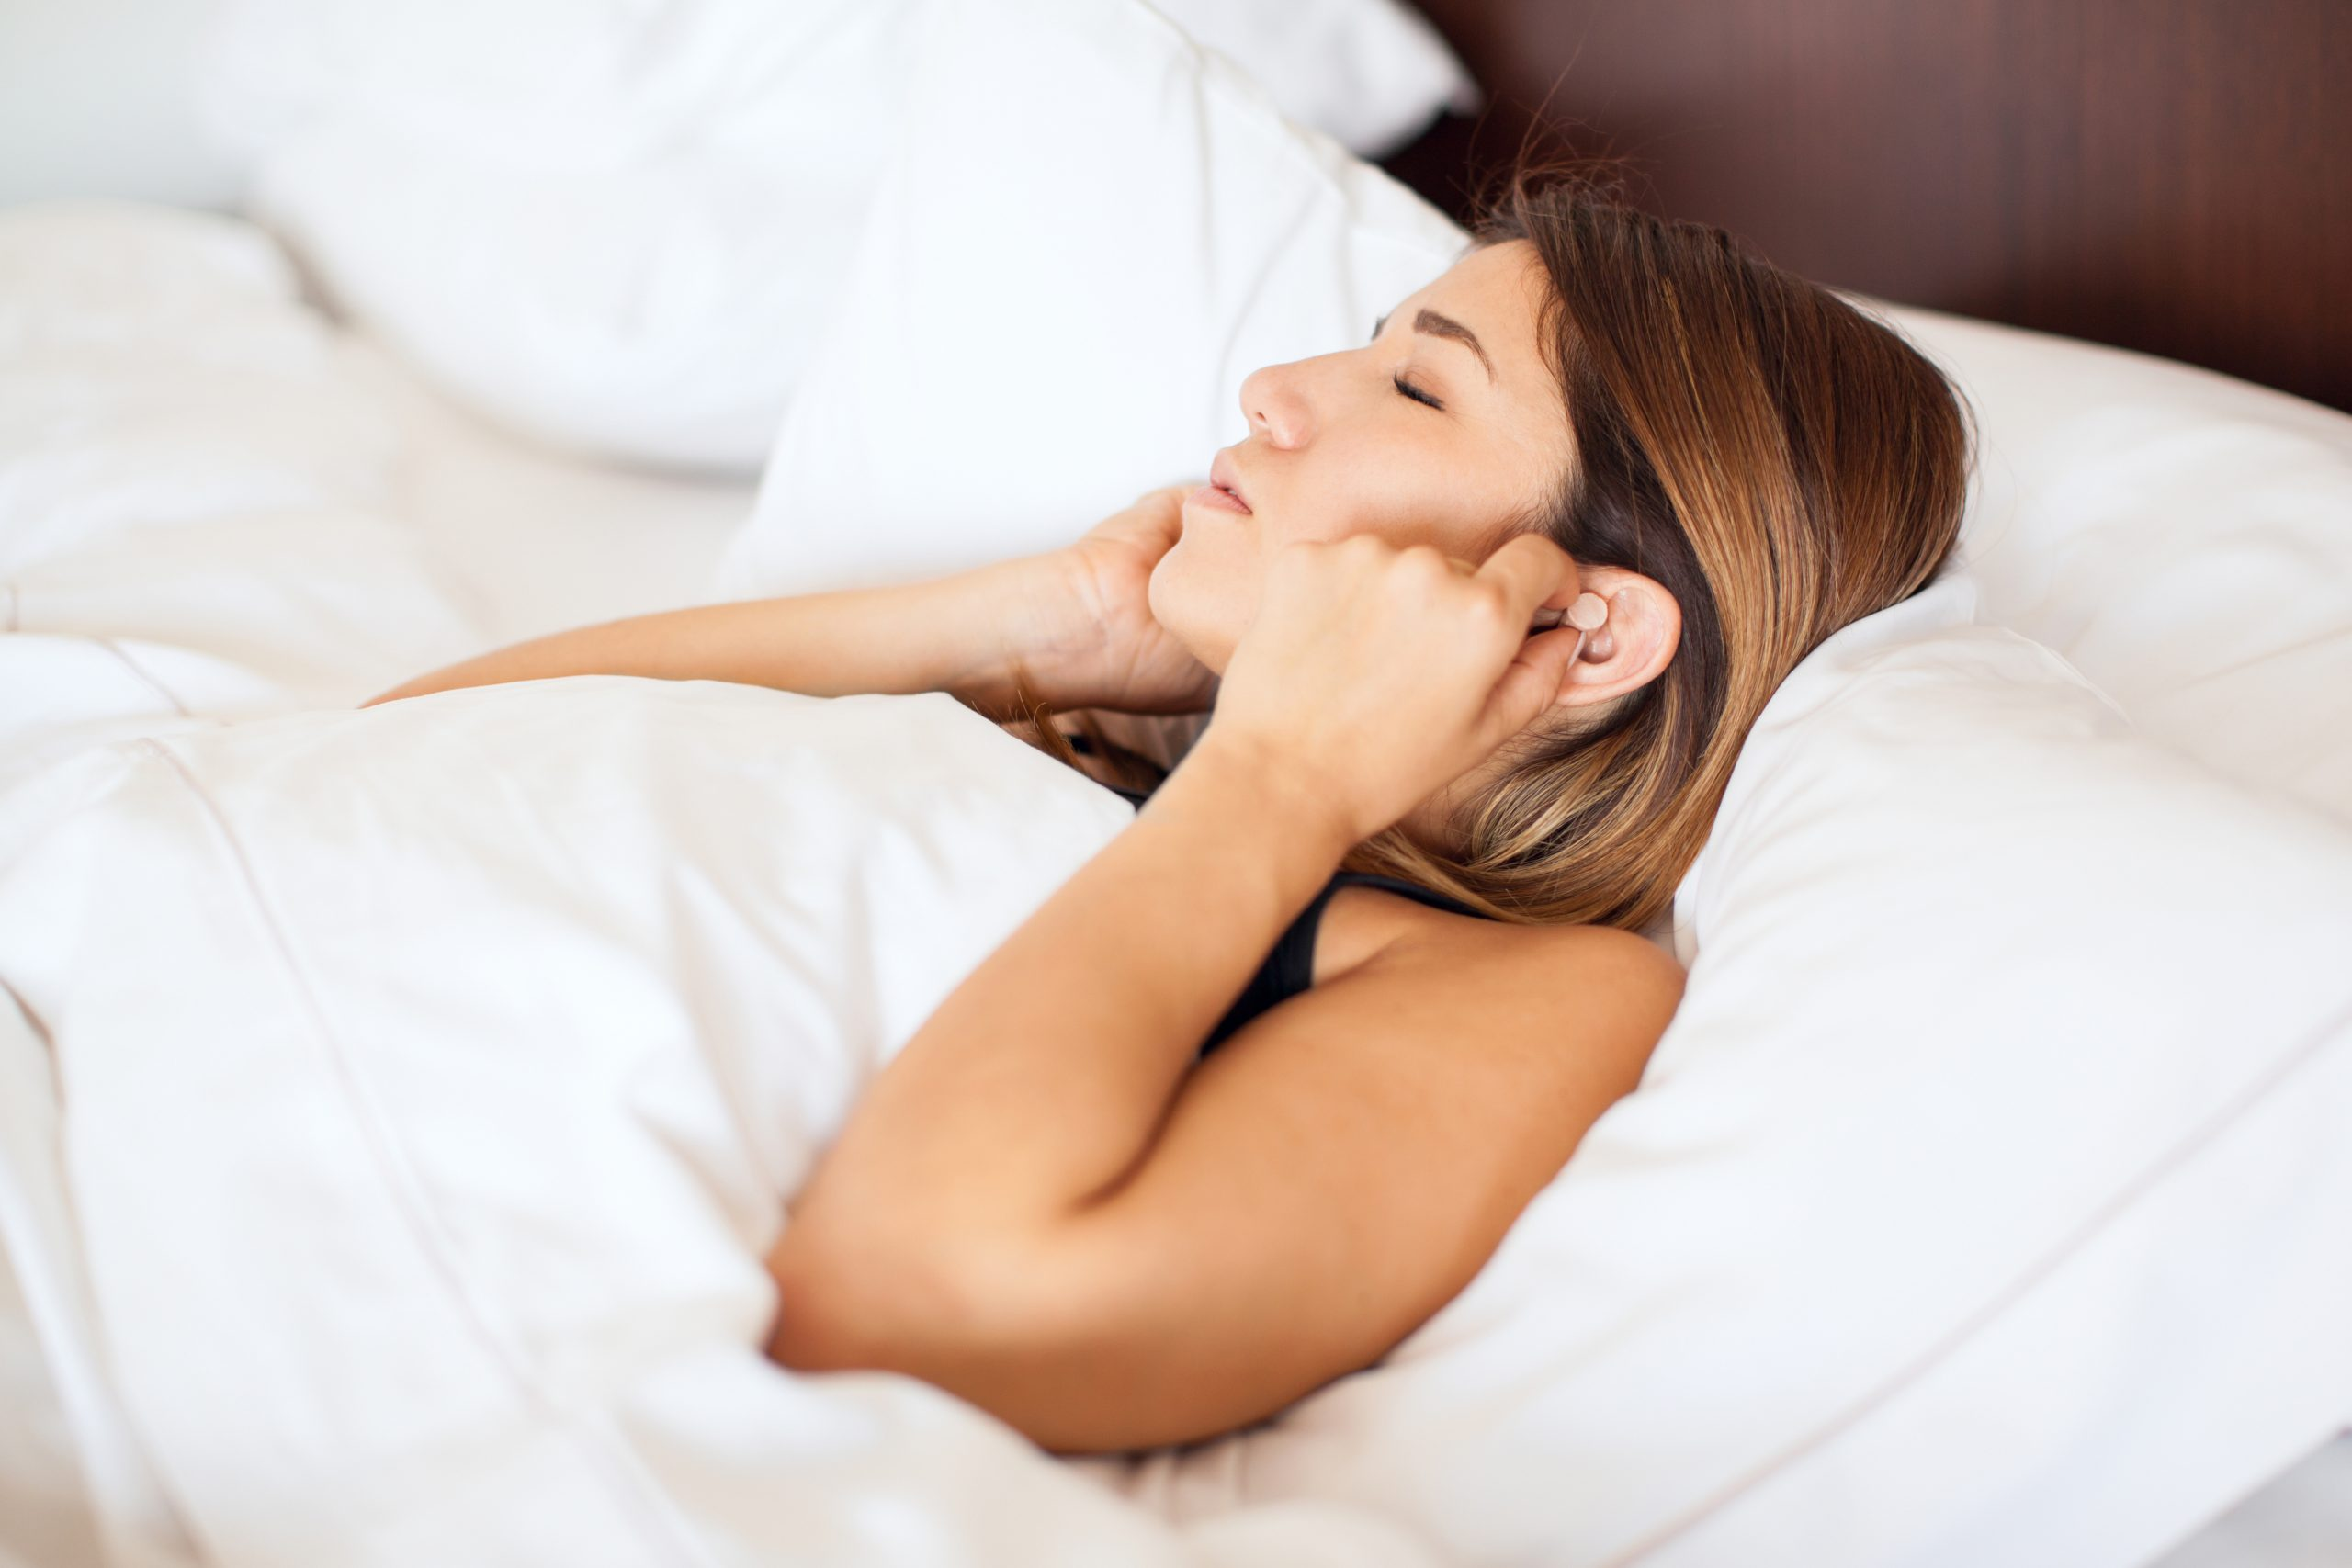 Profile view of a cute young woman putting some earplugs on before going to sleep in a hotel bed